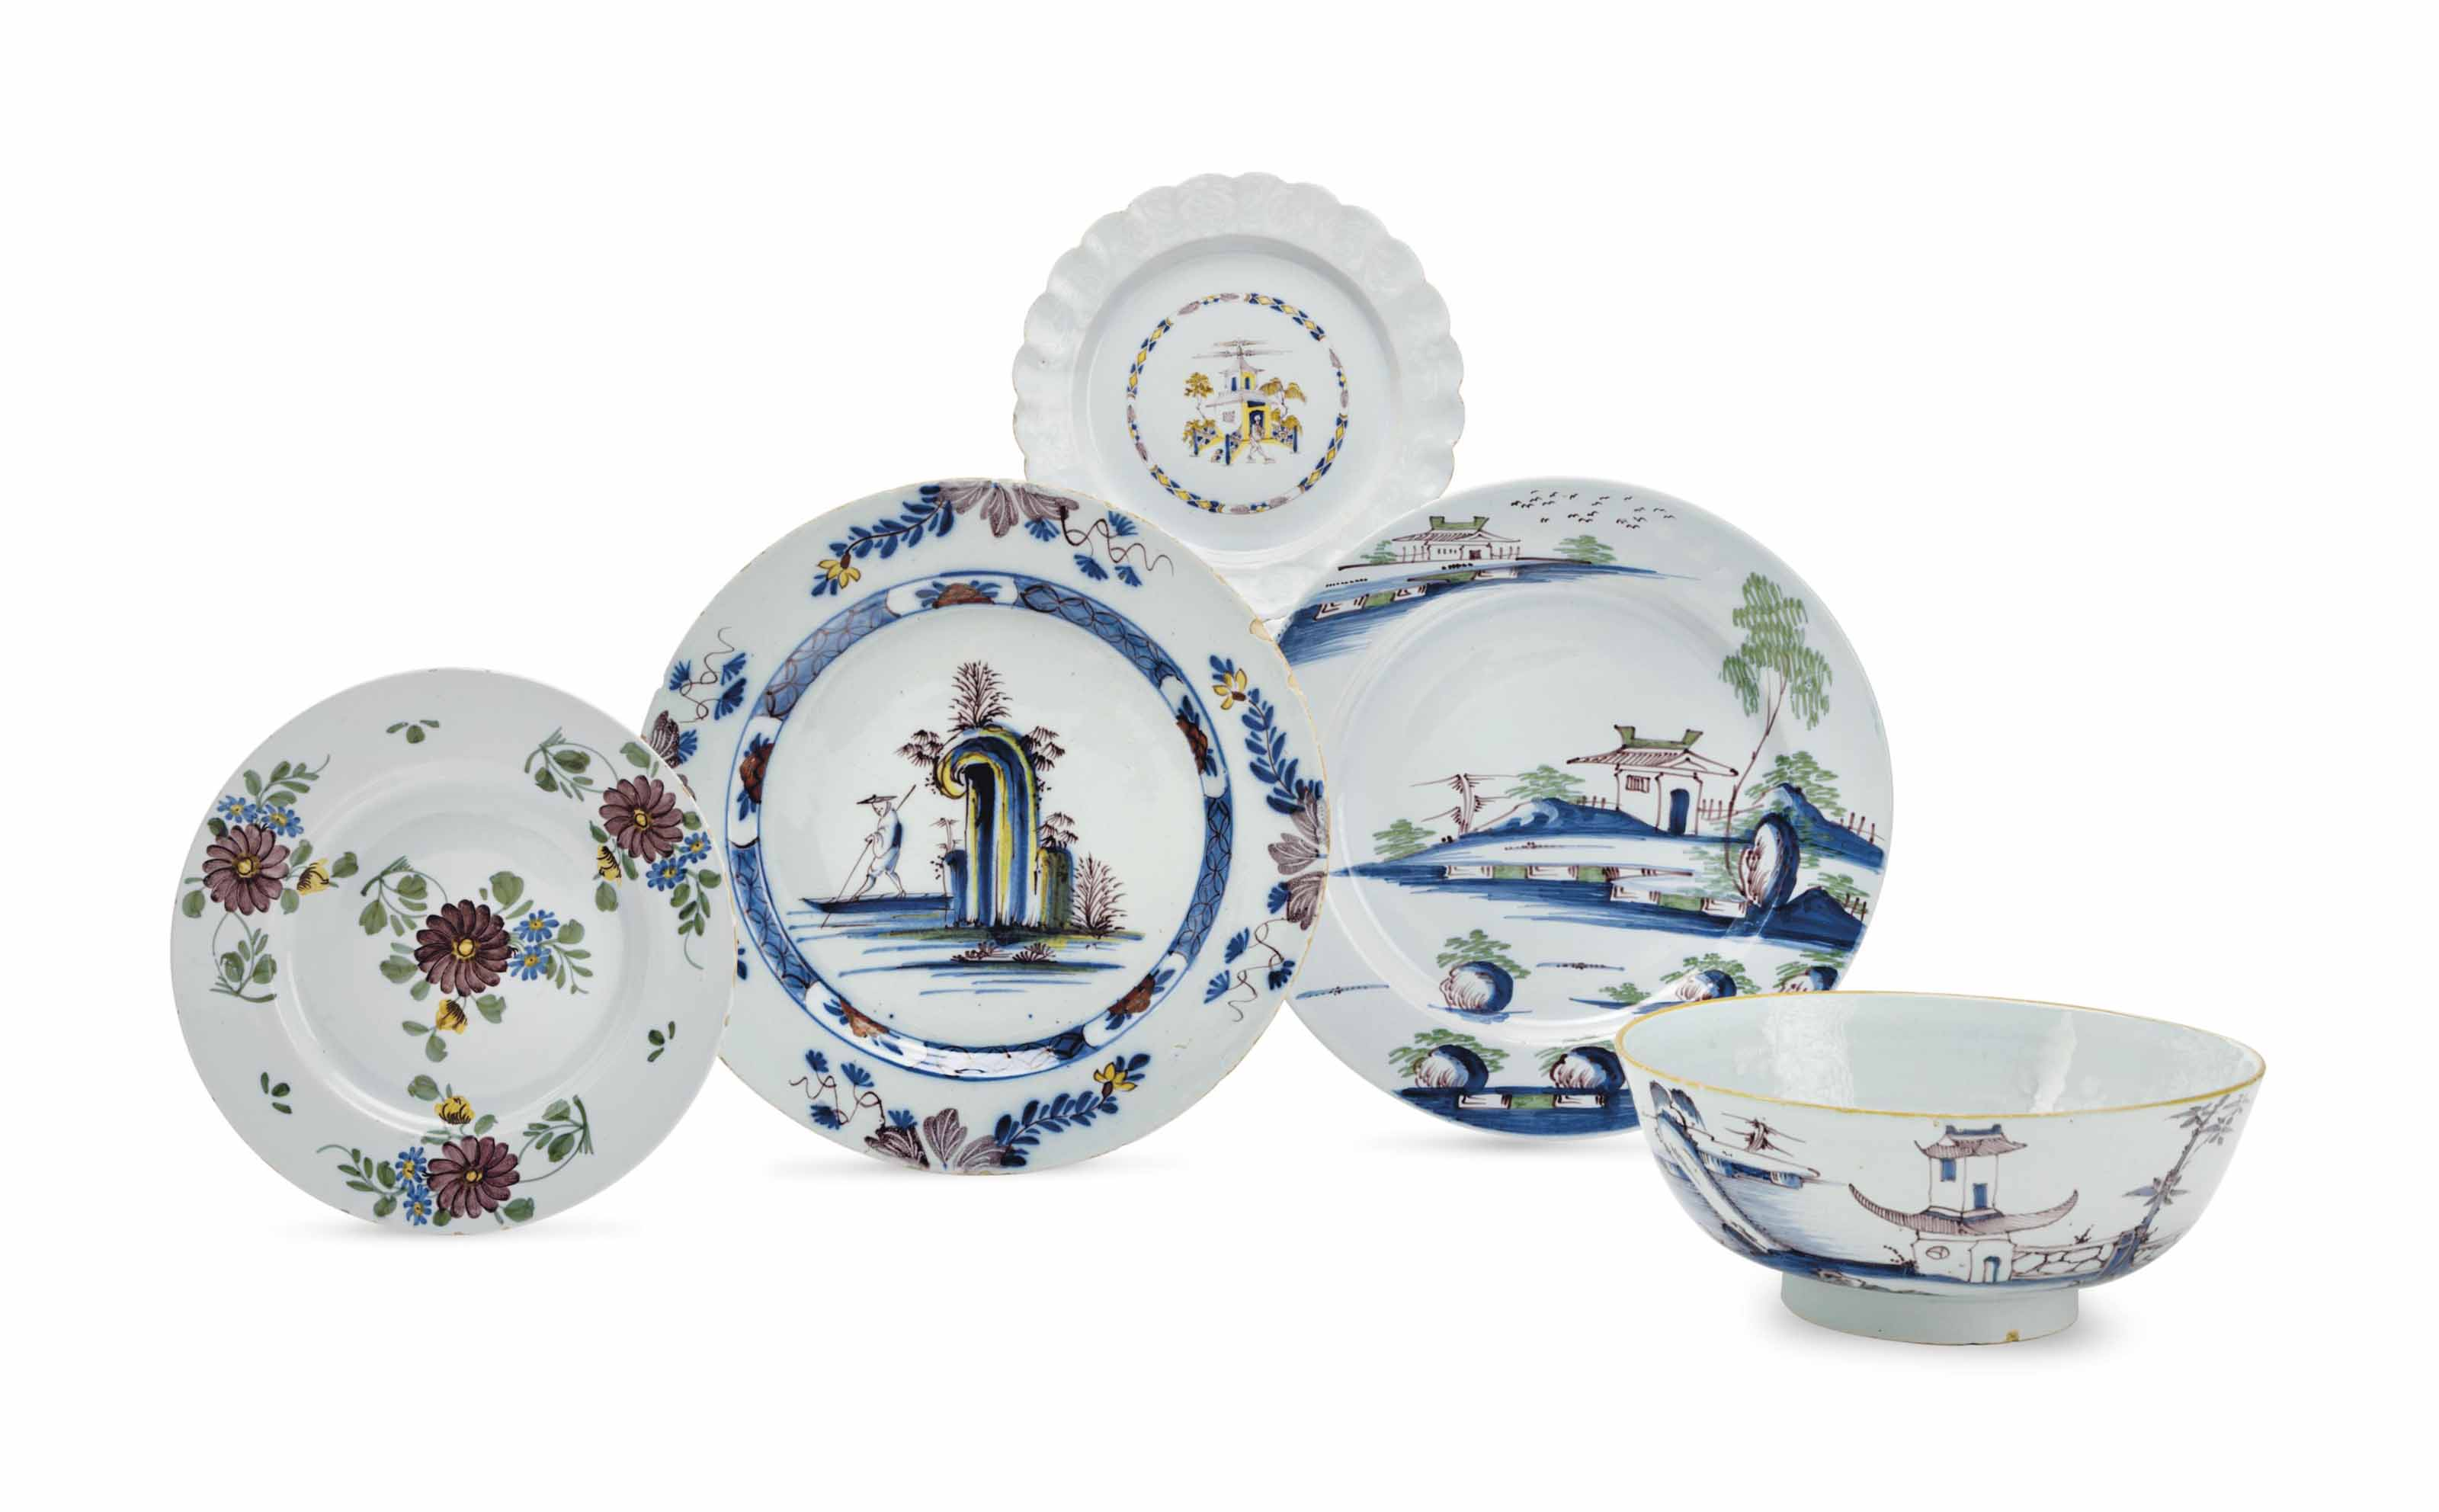 THREE BRISTOL DELFT CHINOISERI